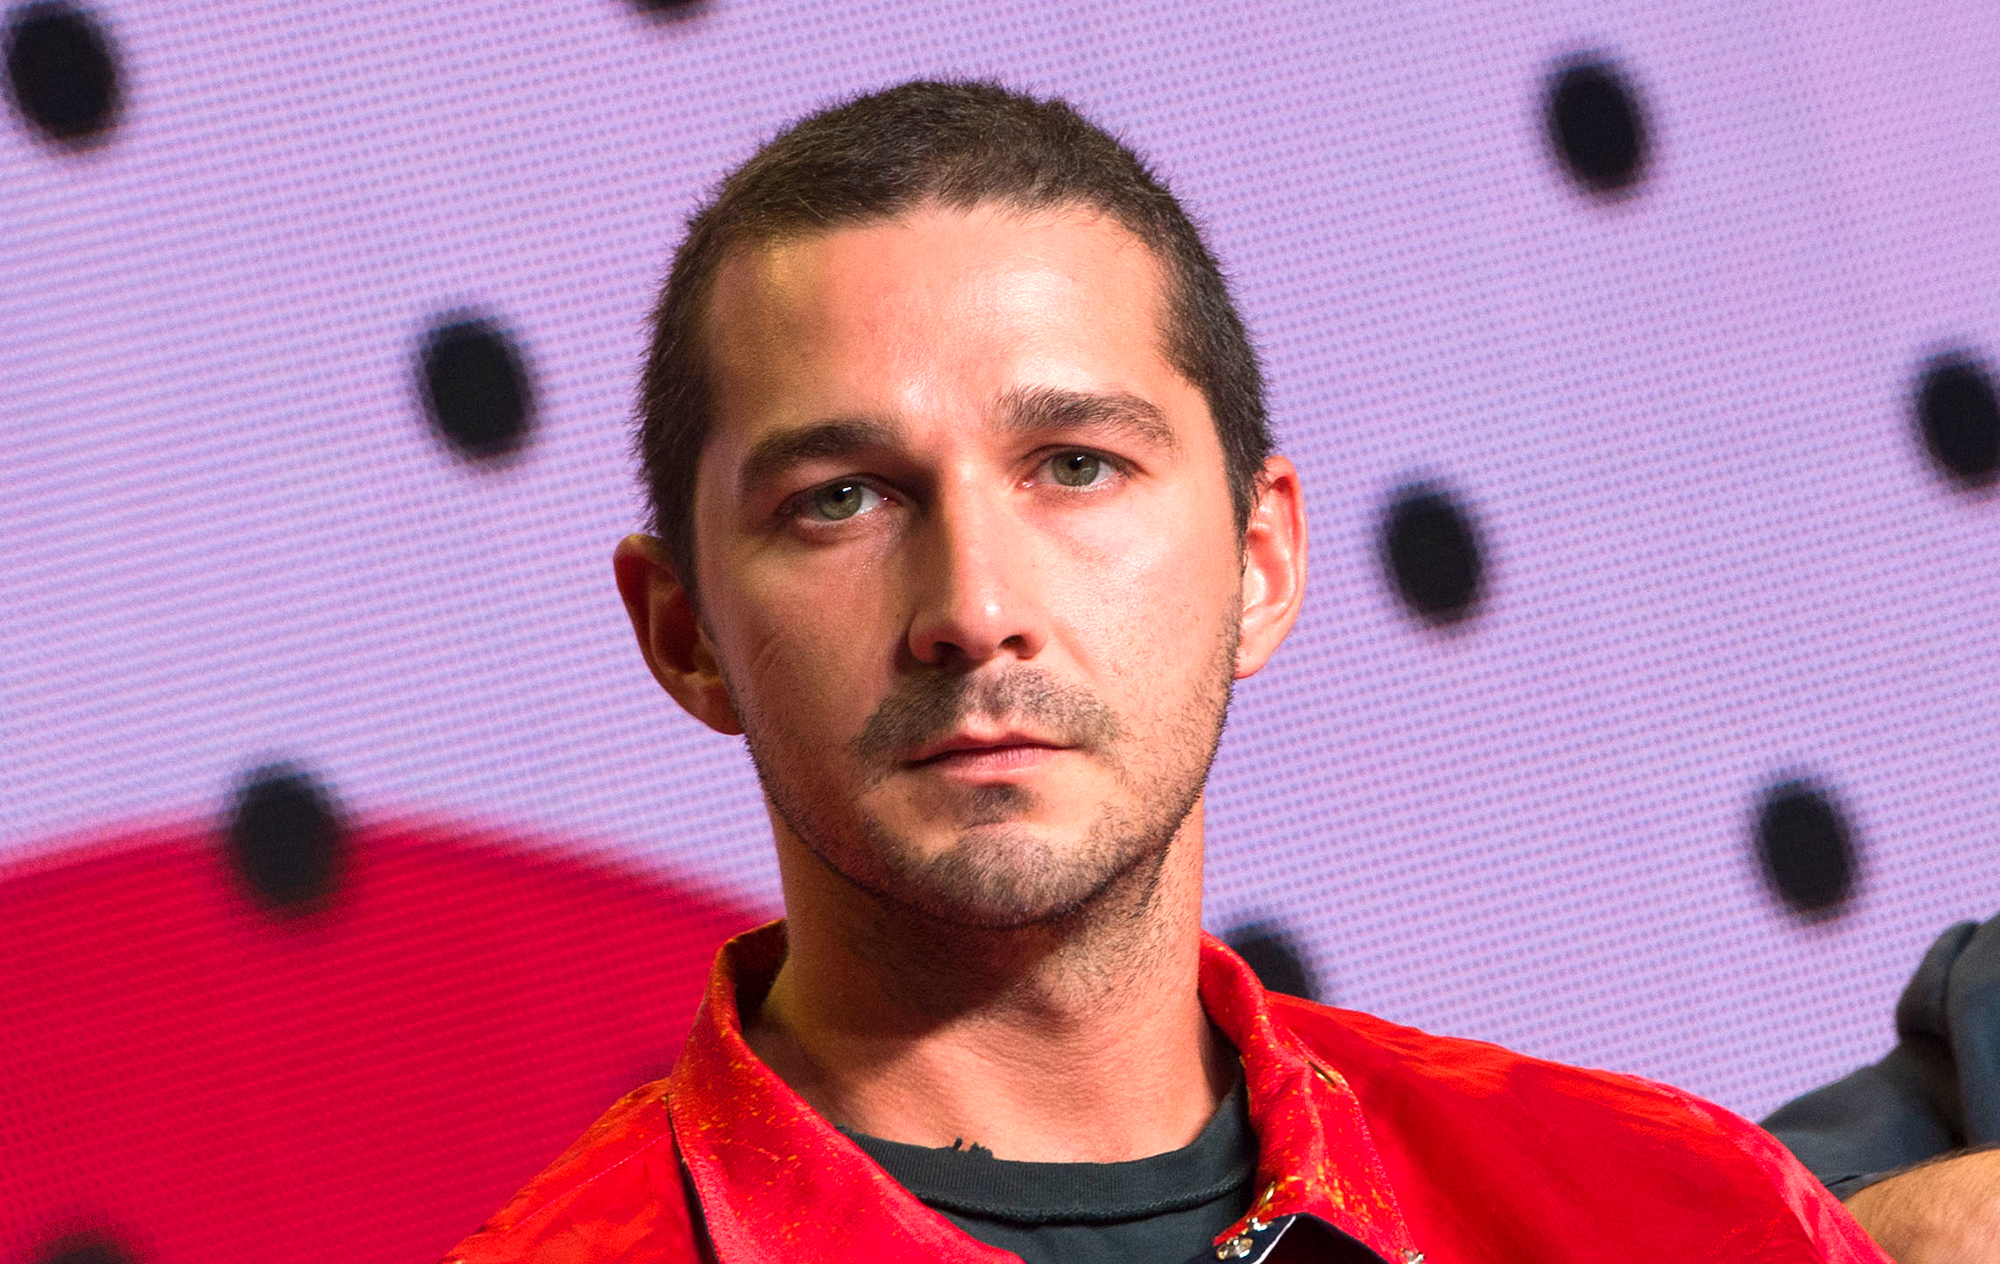 Shia LaBeouf Offered His Clothes to Kanye West, Who Took Them All